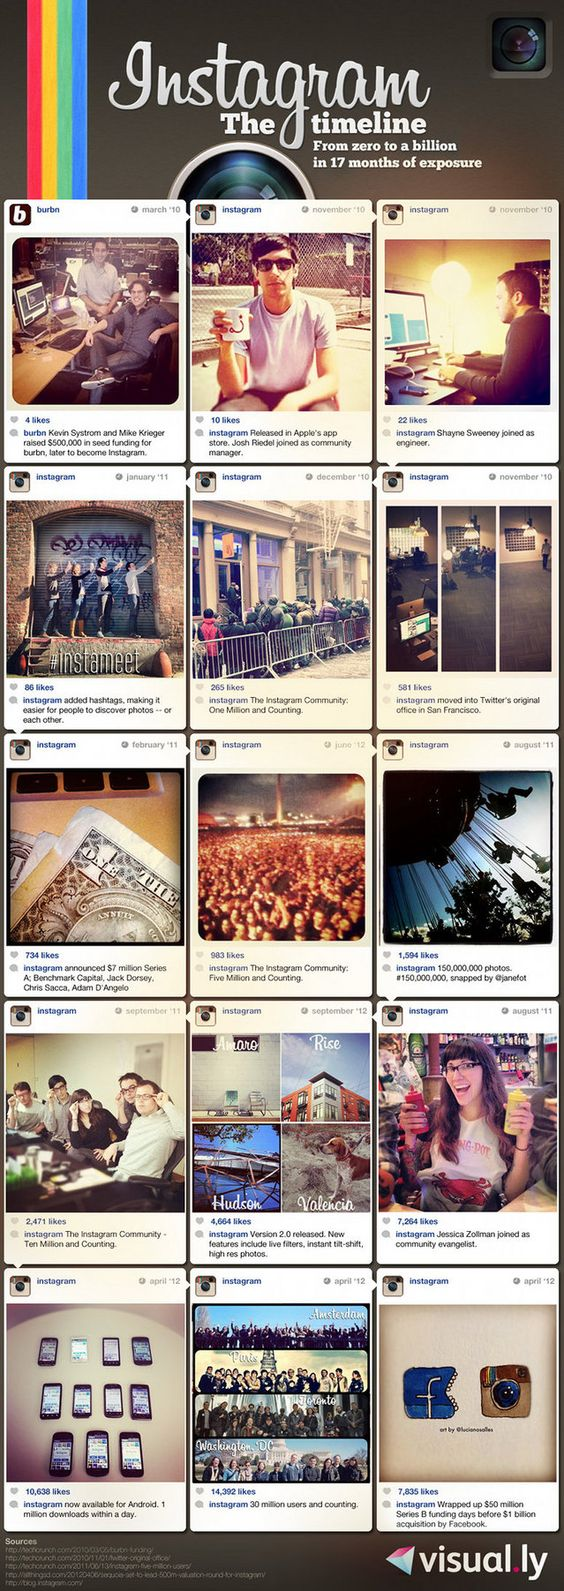 Infographic history of Instagram - pretty cool